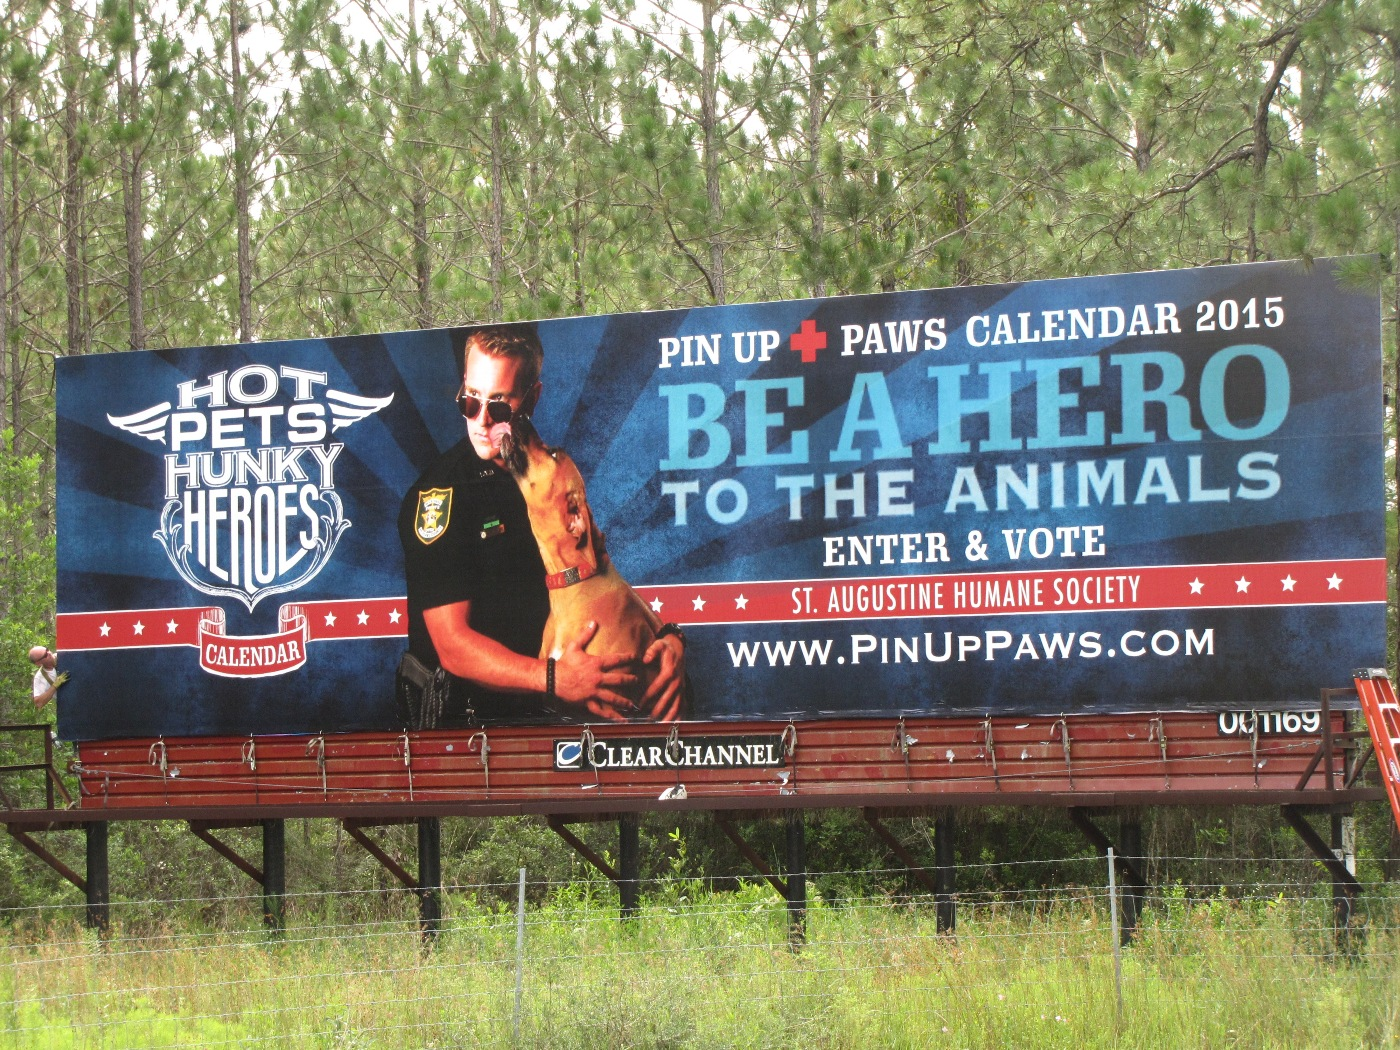 The donated billboard is located on I-95 near County Road 210.